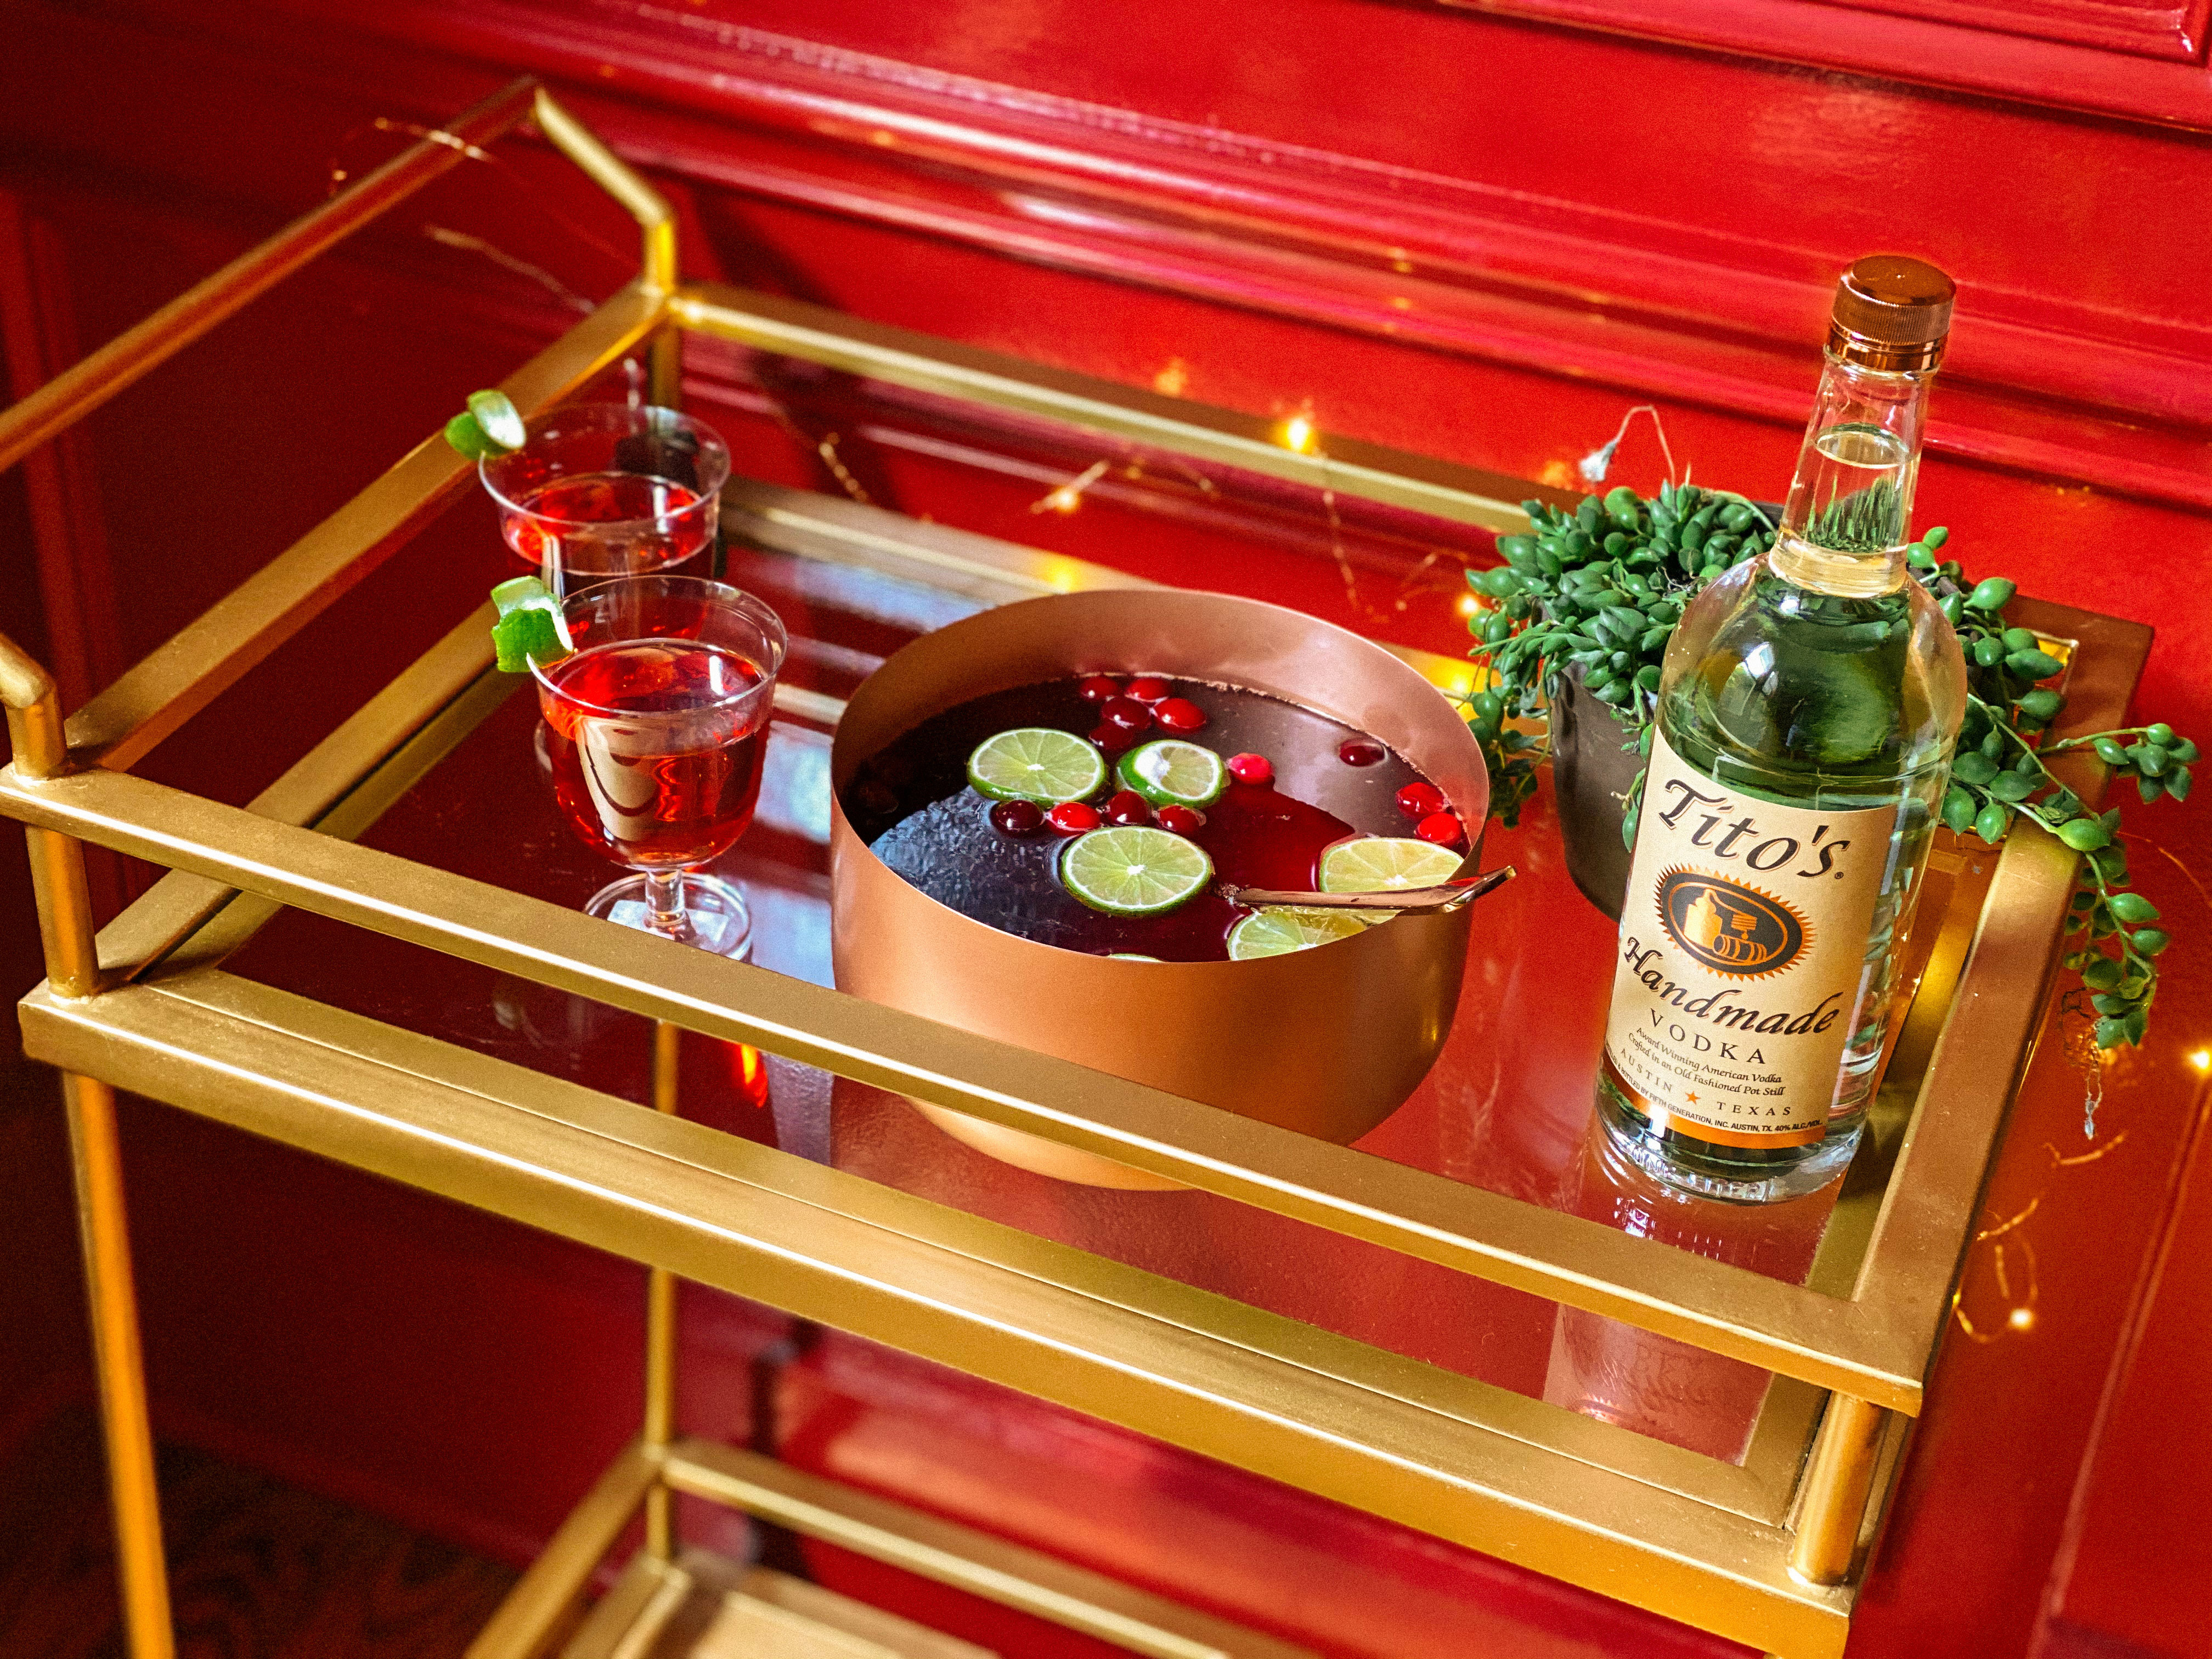 Tito's Tropical Holiday Punch in a pot on a bar cart with two glasses and a bottle of Tito's Handmade Vodka